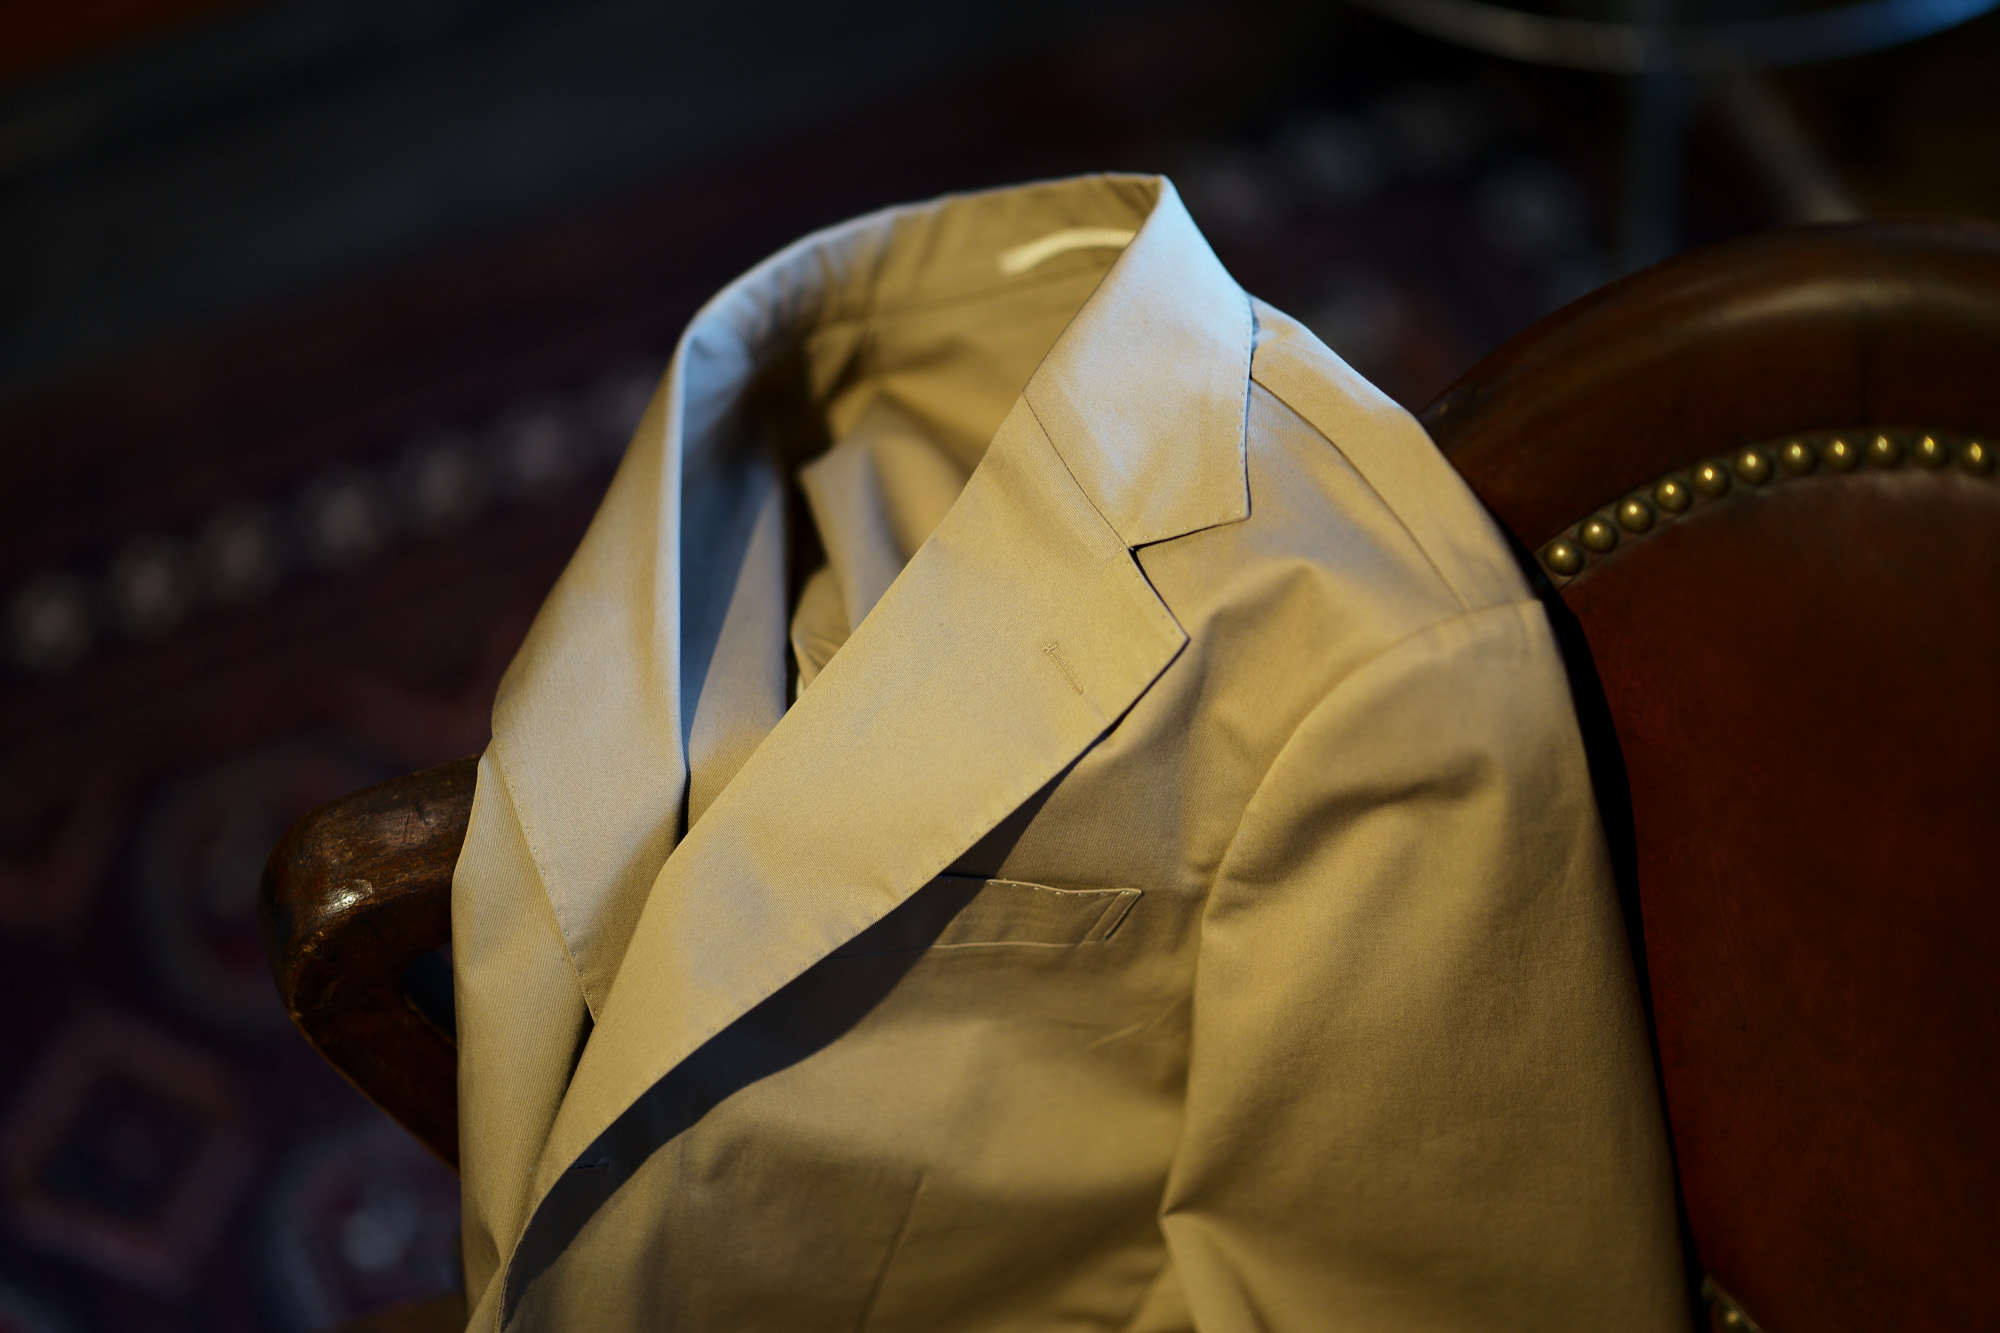 Cuervo (クエルボ) Sartoria Collection (サルトリア コレクション) Rooster (ルースター) ストレッチコットン スーツ BEIGE (ベージュ) MADE IN JAPAN (日本製) 2019 春夏 愛知 名古屋 alto e diritto アルトエデリット